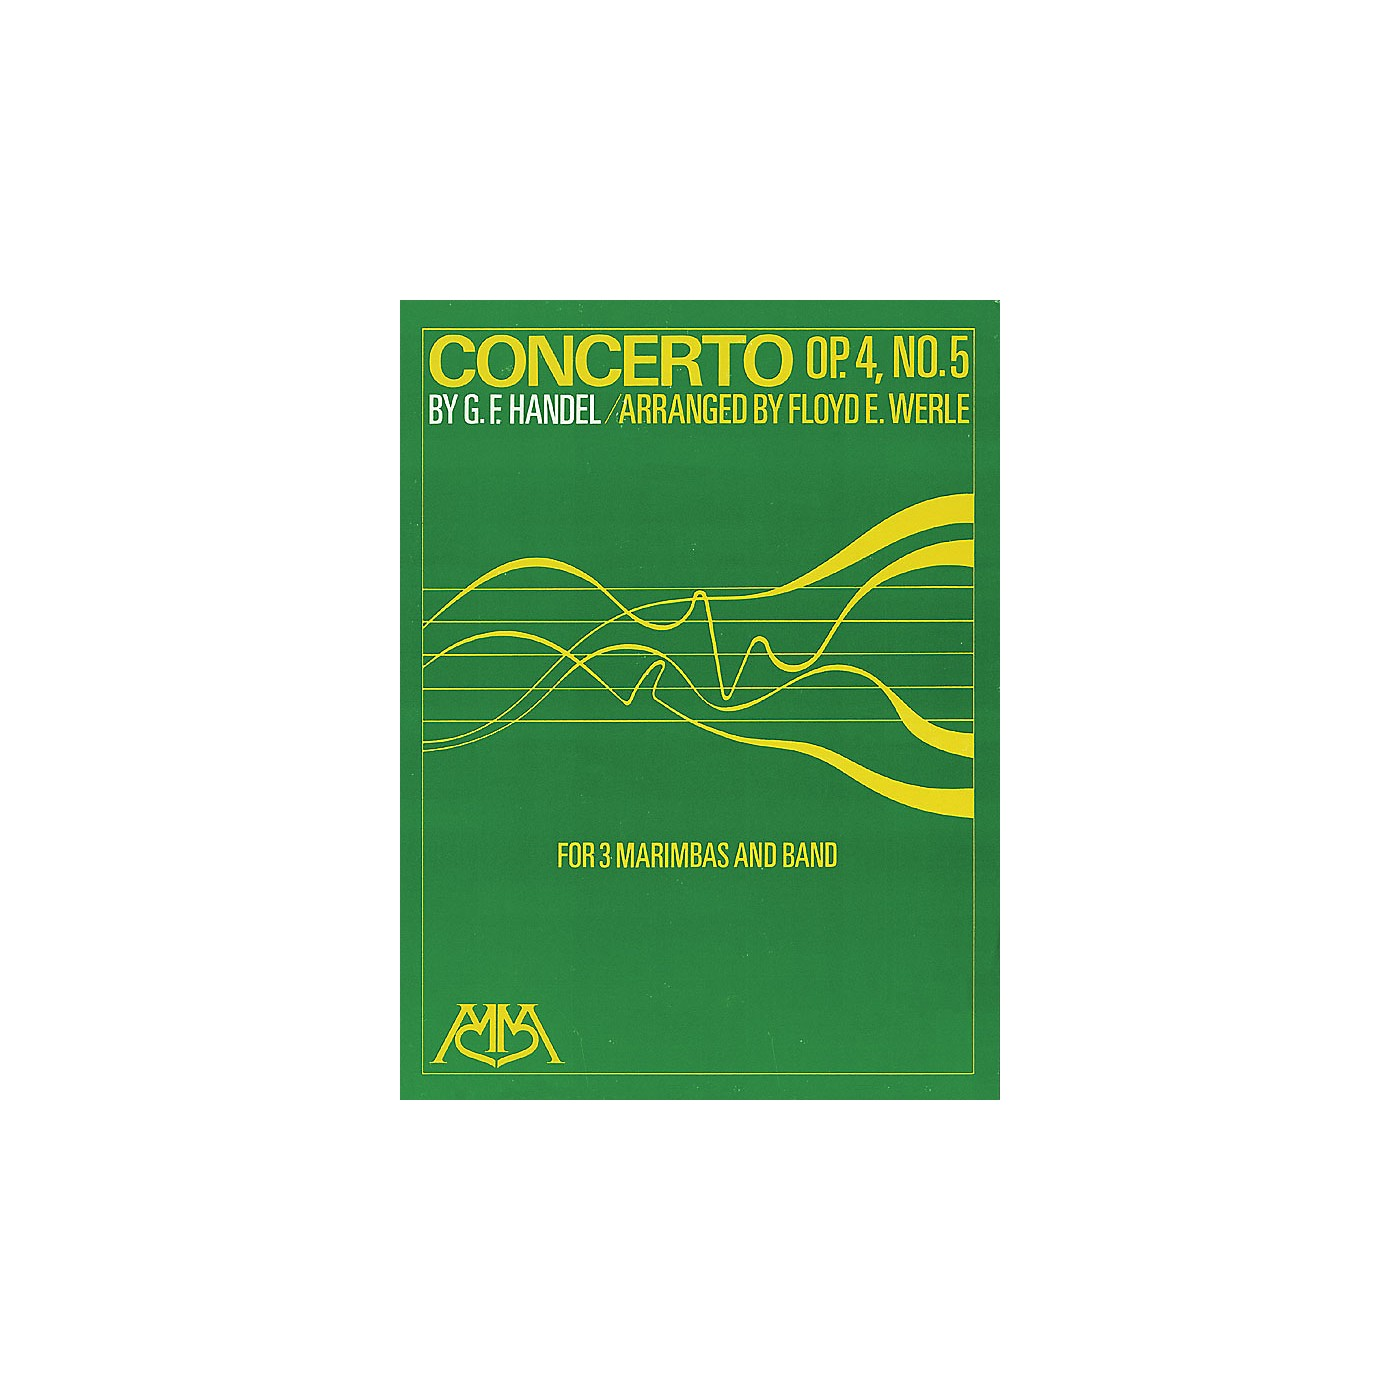 Hal Leonard Concerto Op. 4, No. 5 (for 3 Marimbas and Band) Concert Band Arranged by Floyd E. Werle thumbnail